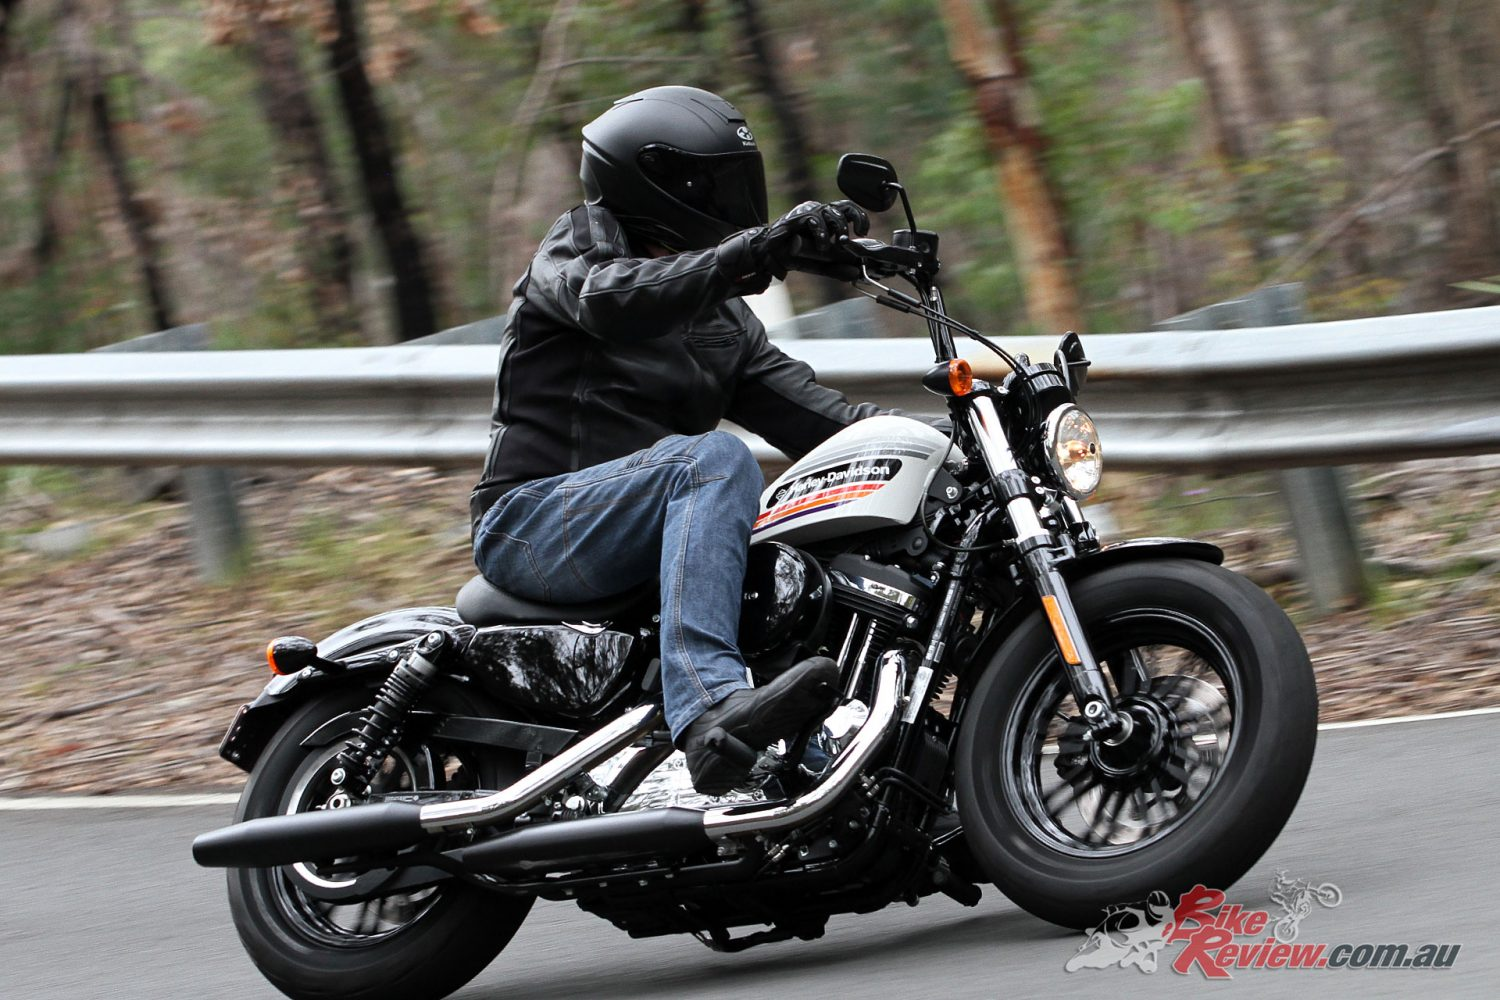 Harley's 2018 Sportster FortyEight Special